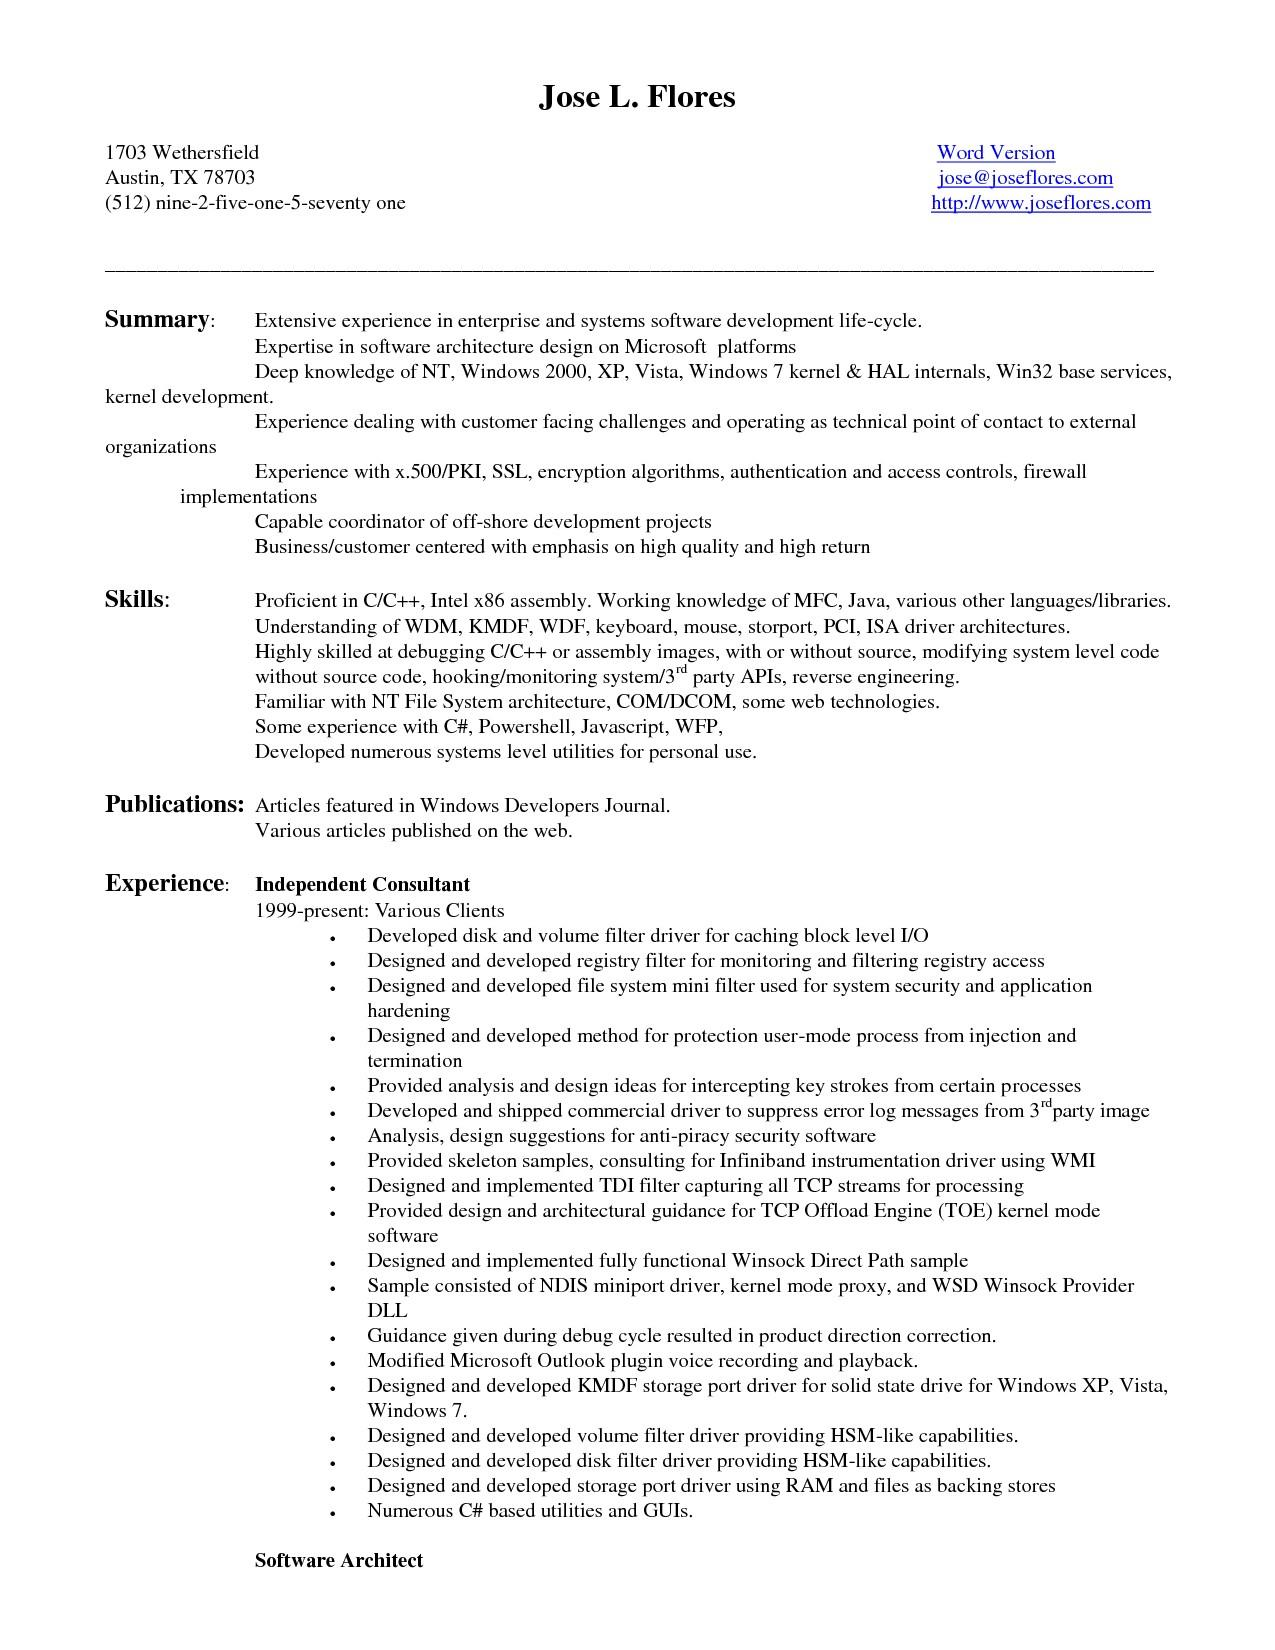 27 Lovely Entry Level Software Engineer Resume by Pictures